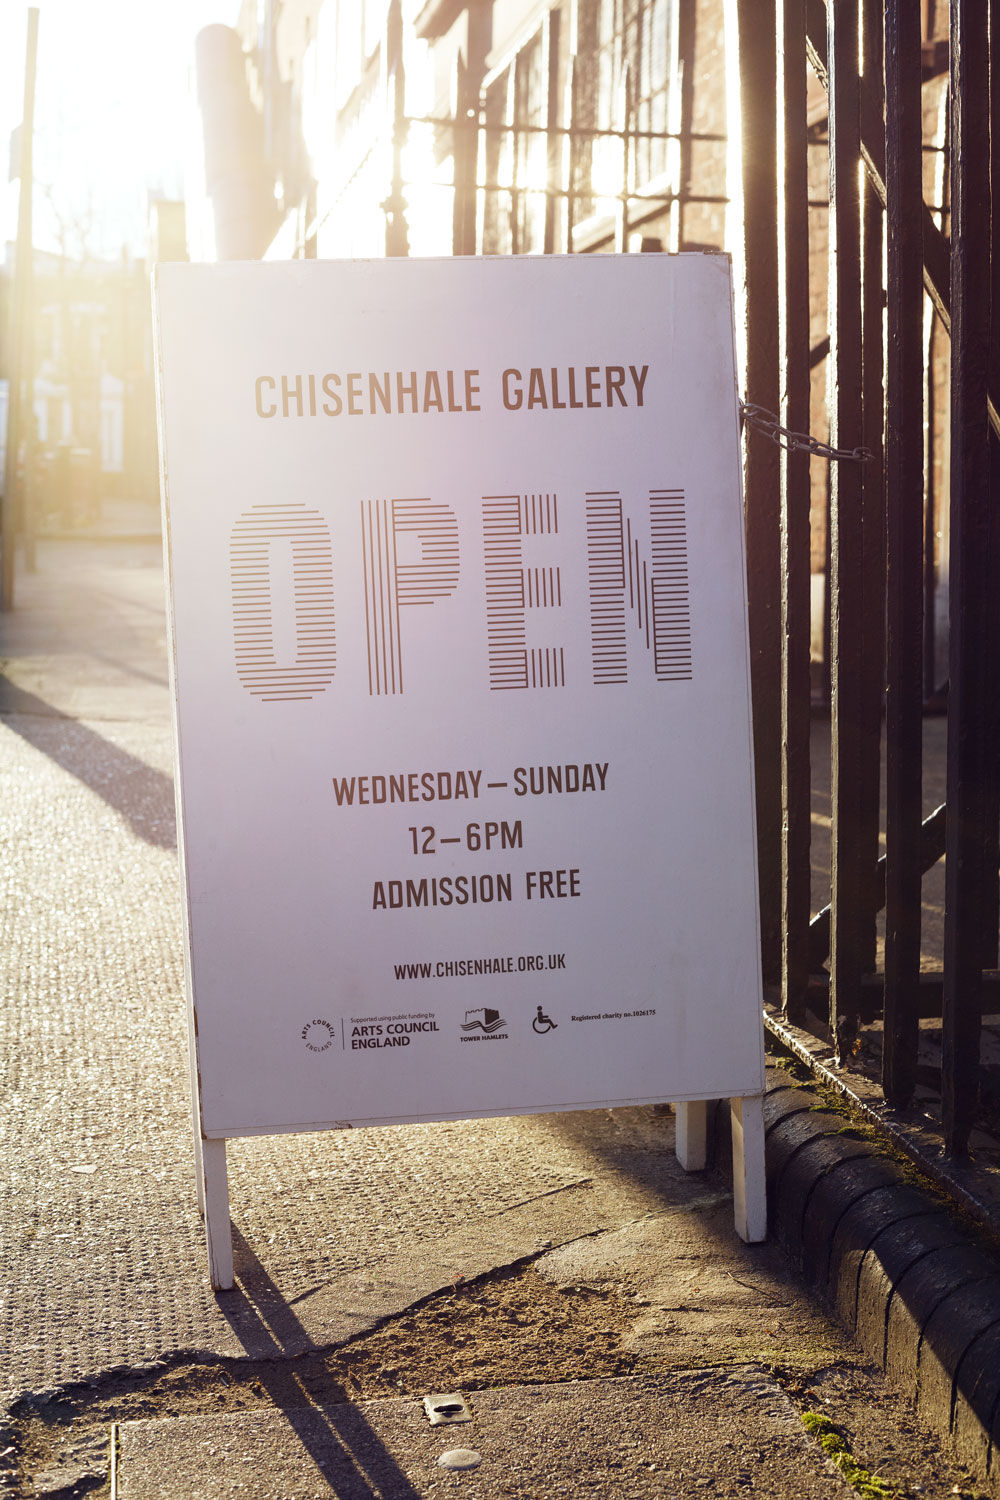 Chisenhale Gallery, no. 53 in An Opinionated Guide to East London © Charlotte Schreiber